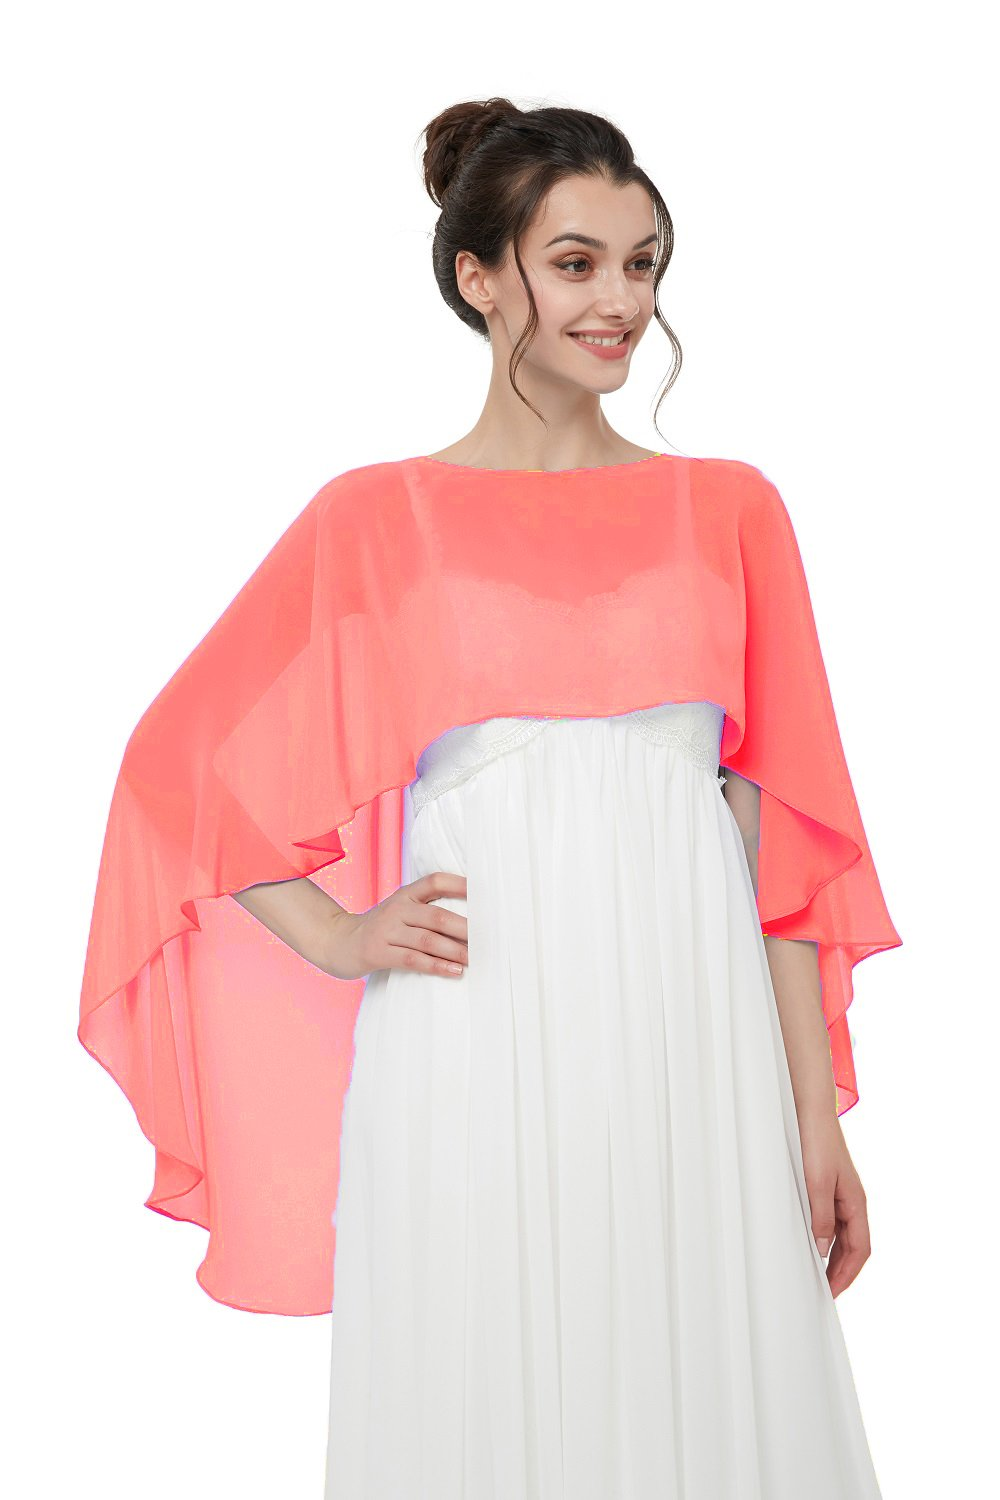 Hot Dresses Women's Chiffon Soft Shawl for Weddings Long Evening Wraps For Special Occasion (Watermelon Red)